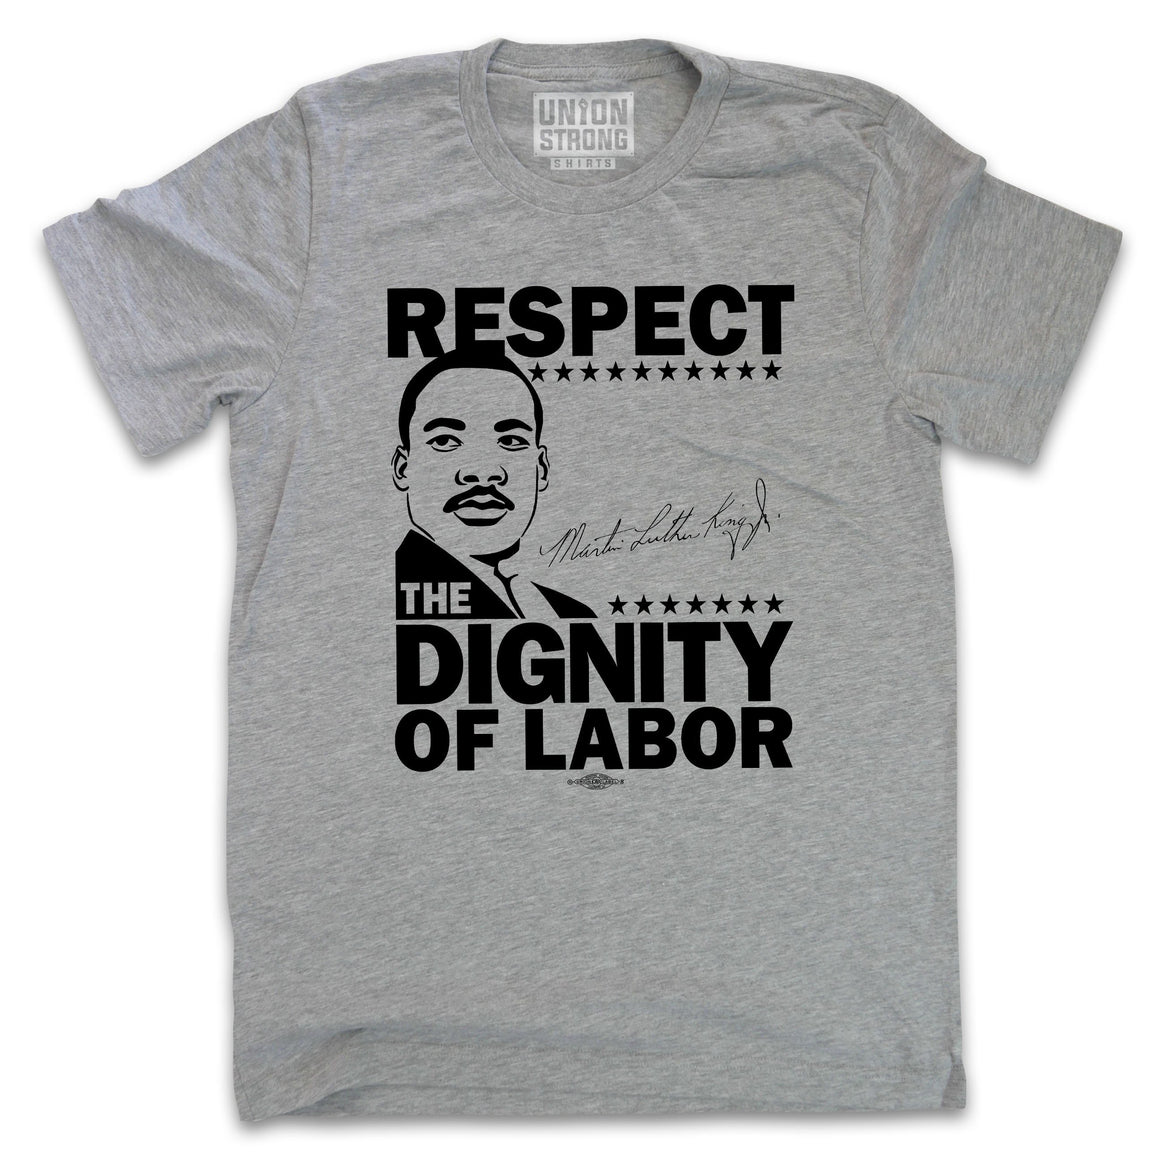 Respect the Dignity of Labor - Dr. Martin Luther King Jr. Shirts unionstrongshirts